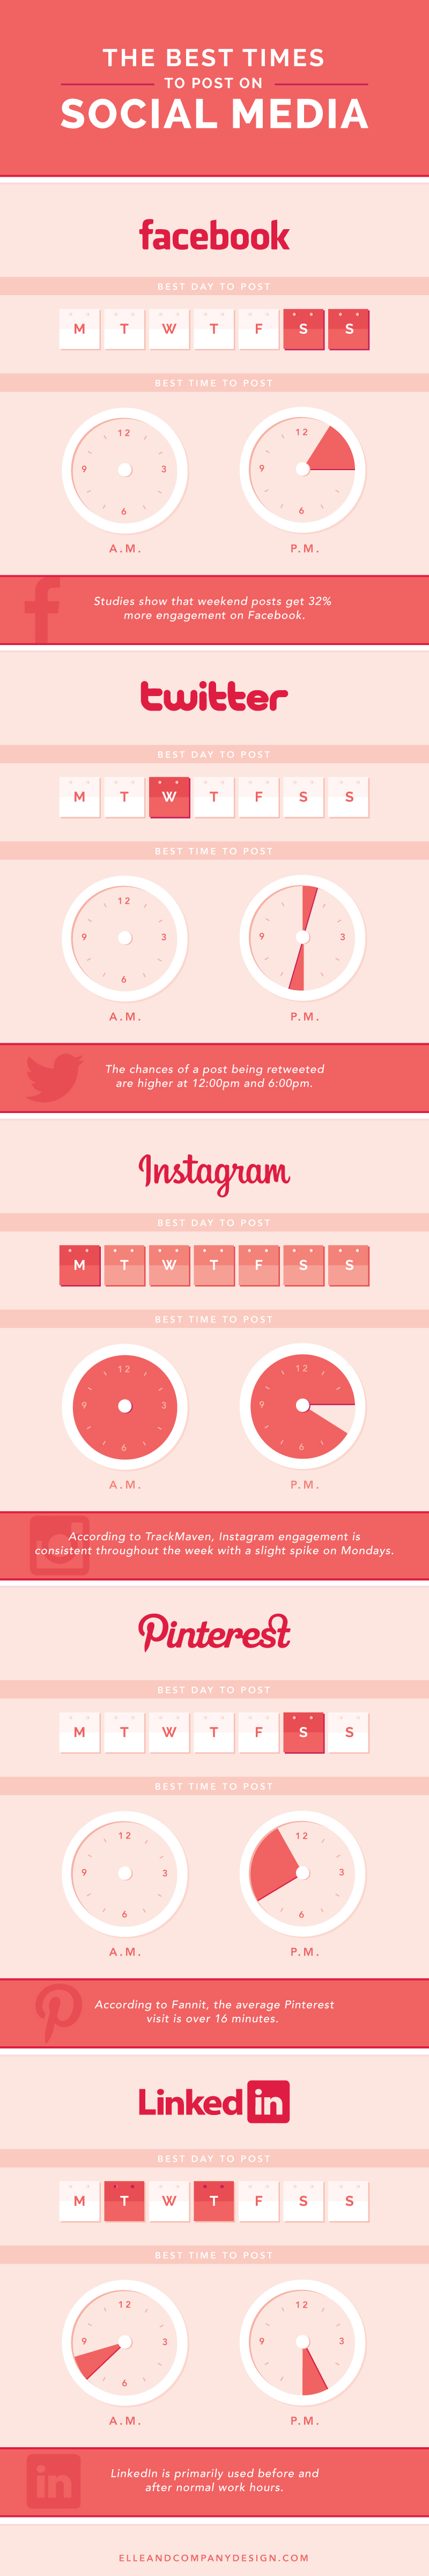 The Best Times to Post to Social Media | Elle & Company